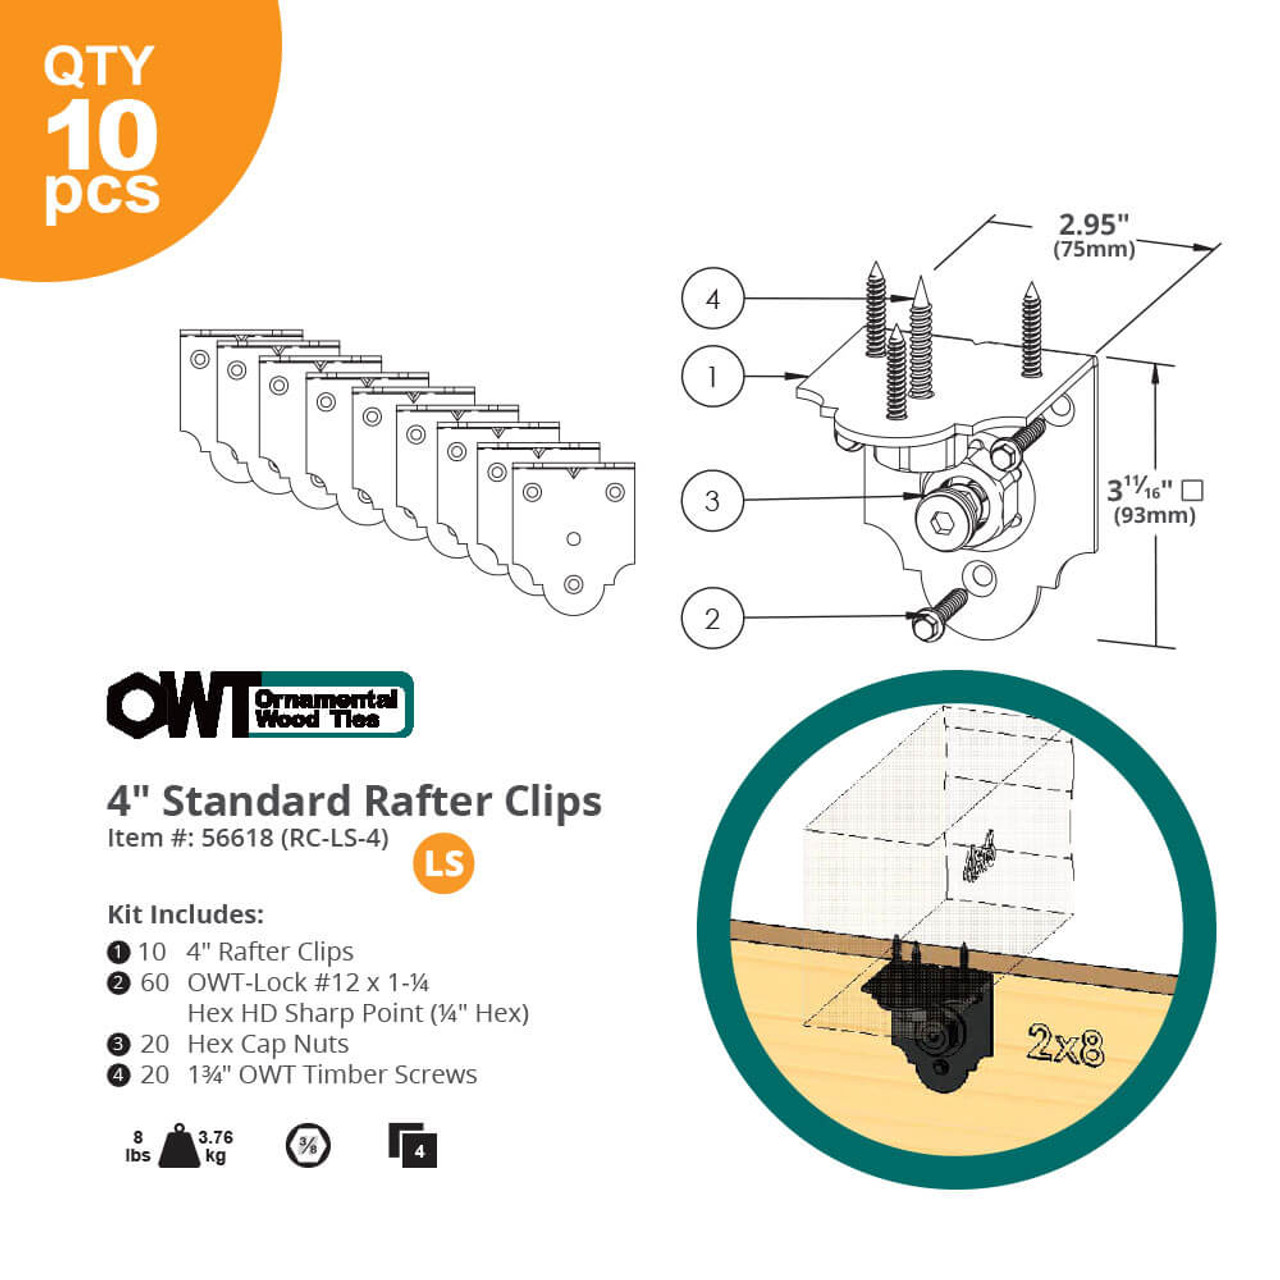 "OZCO OWT 4"" Laredo Sunset Rafter Clips Dimension Drawing"